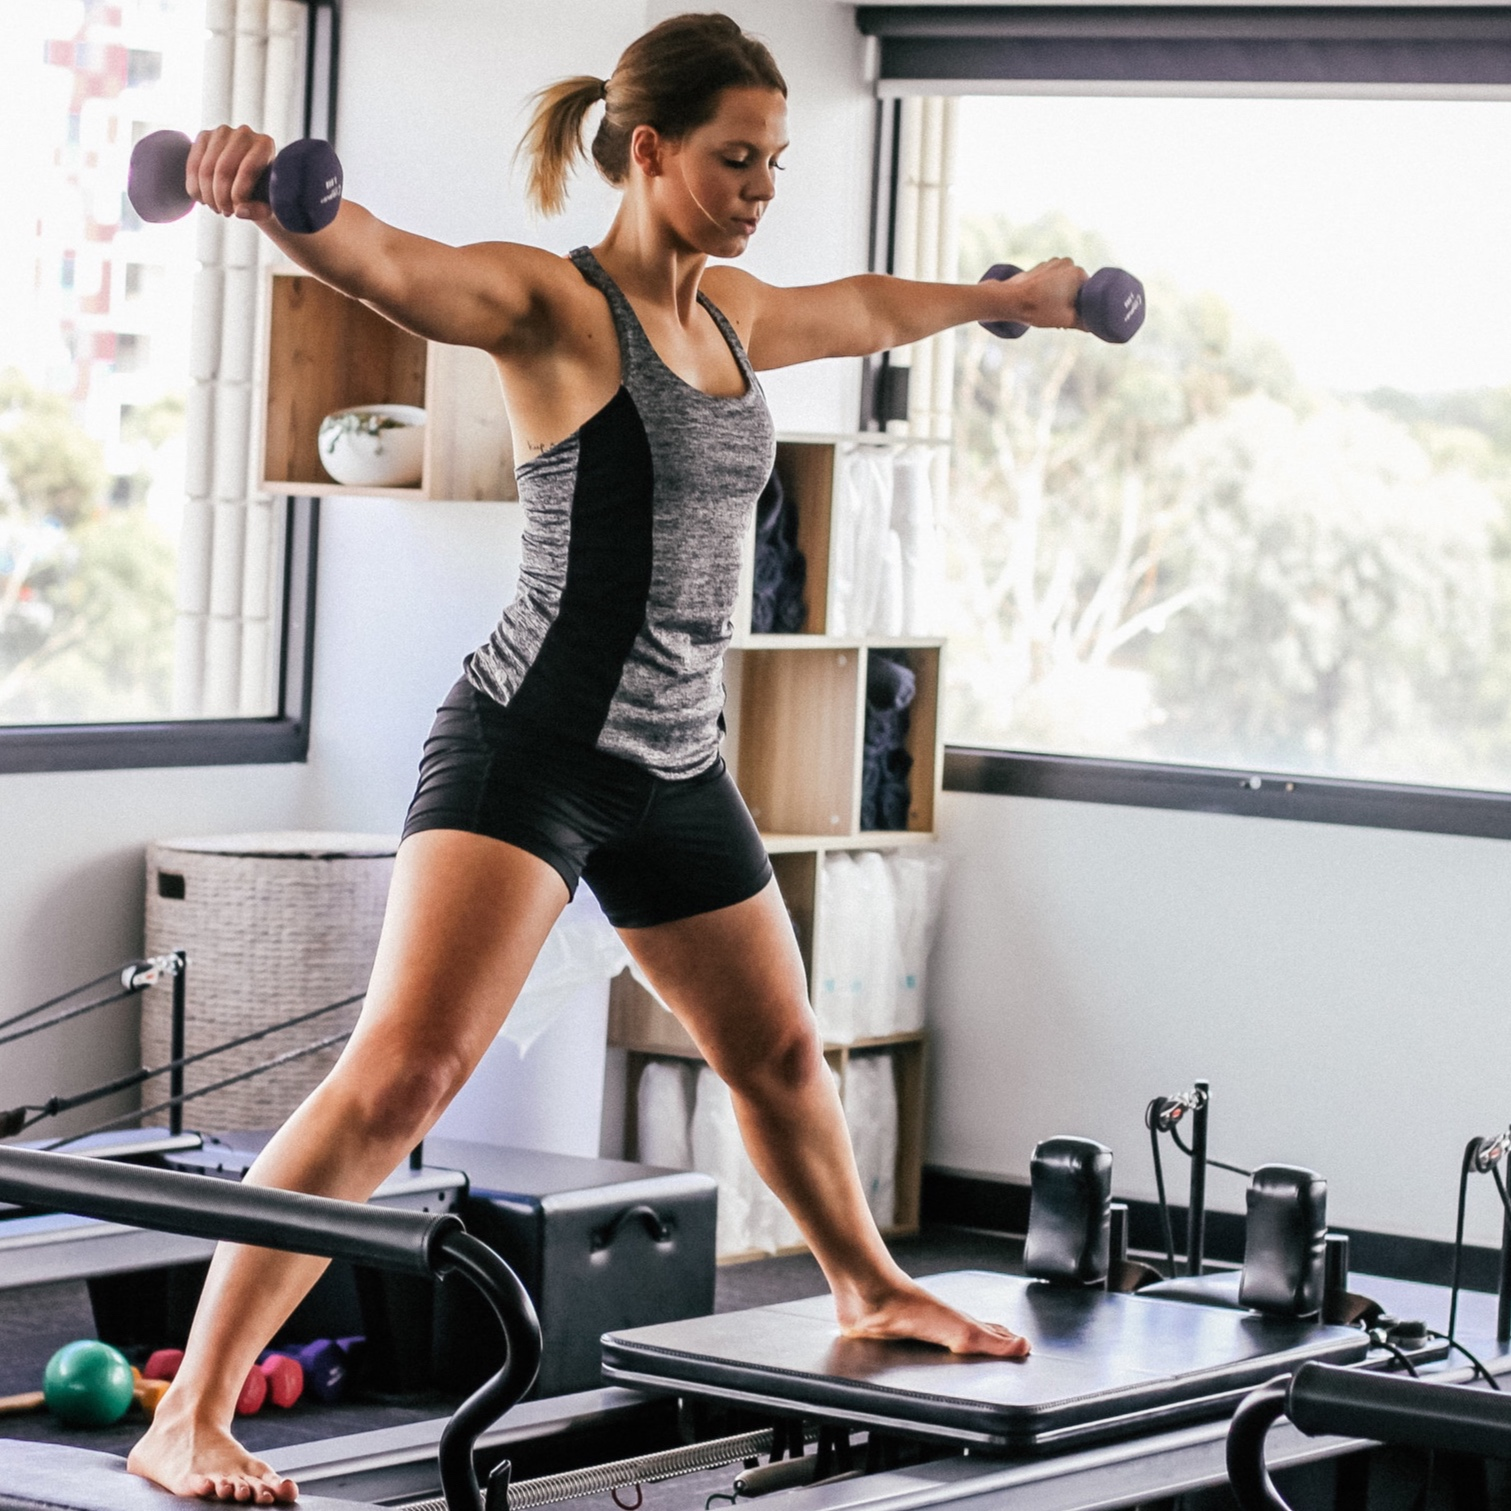 Reformer private session workout in Thames Ditton Studio, Surrey